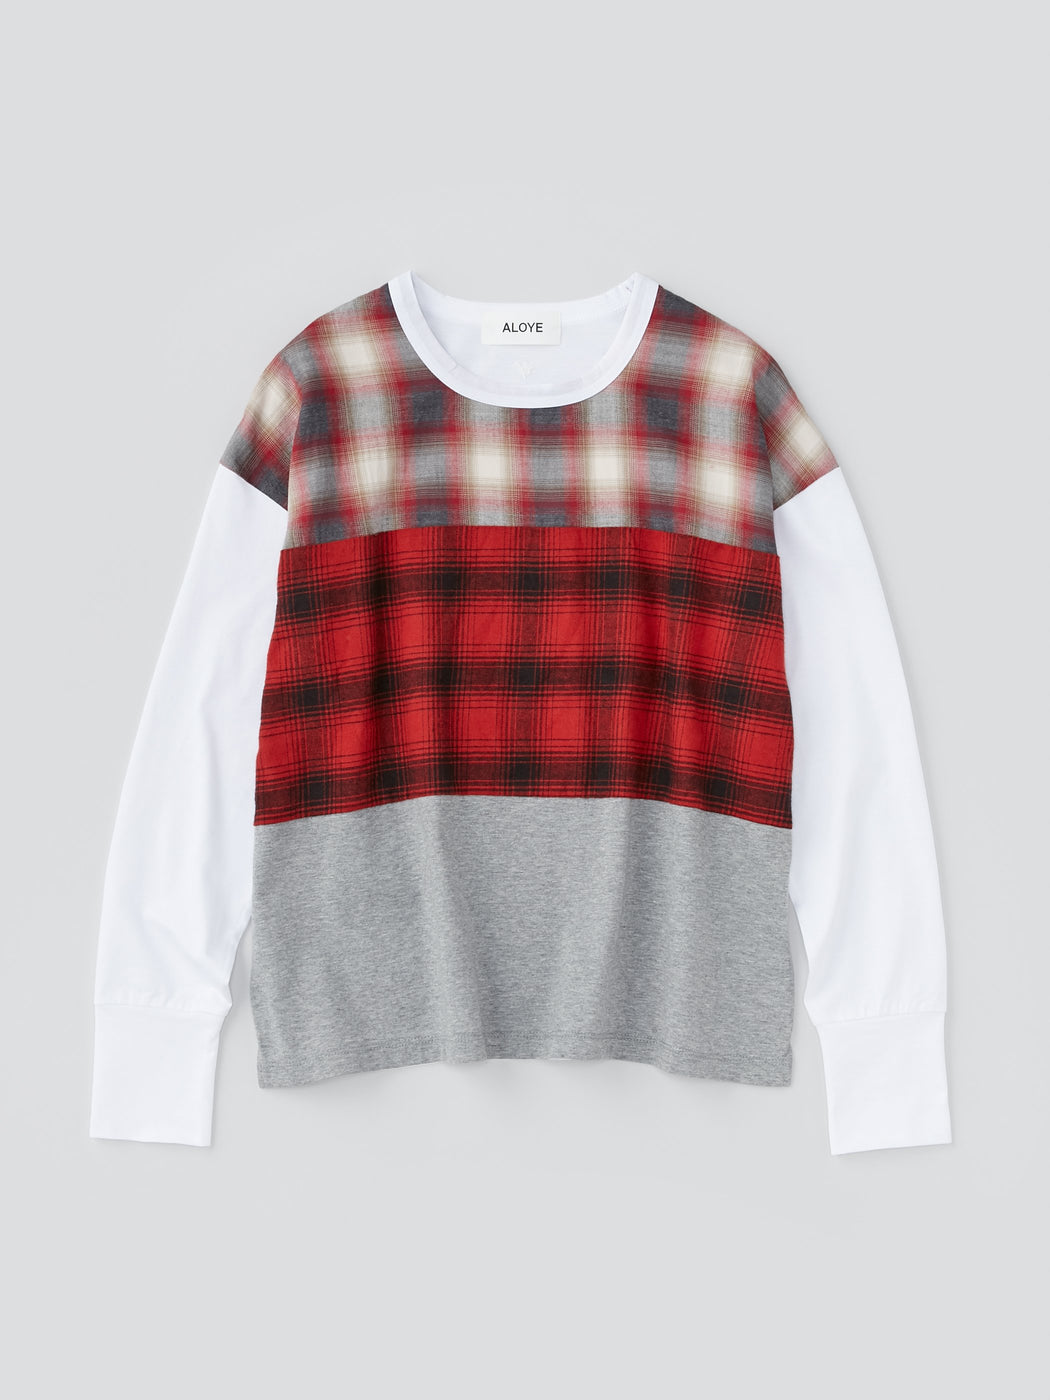 ALOYE Shirt Fabrics Women's Long Sleeve Wide T-shirt Red Tartan Color Block